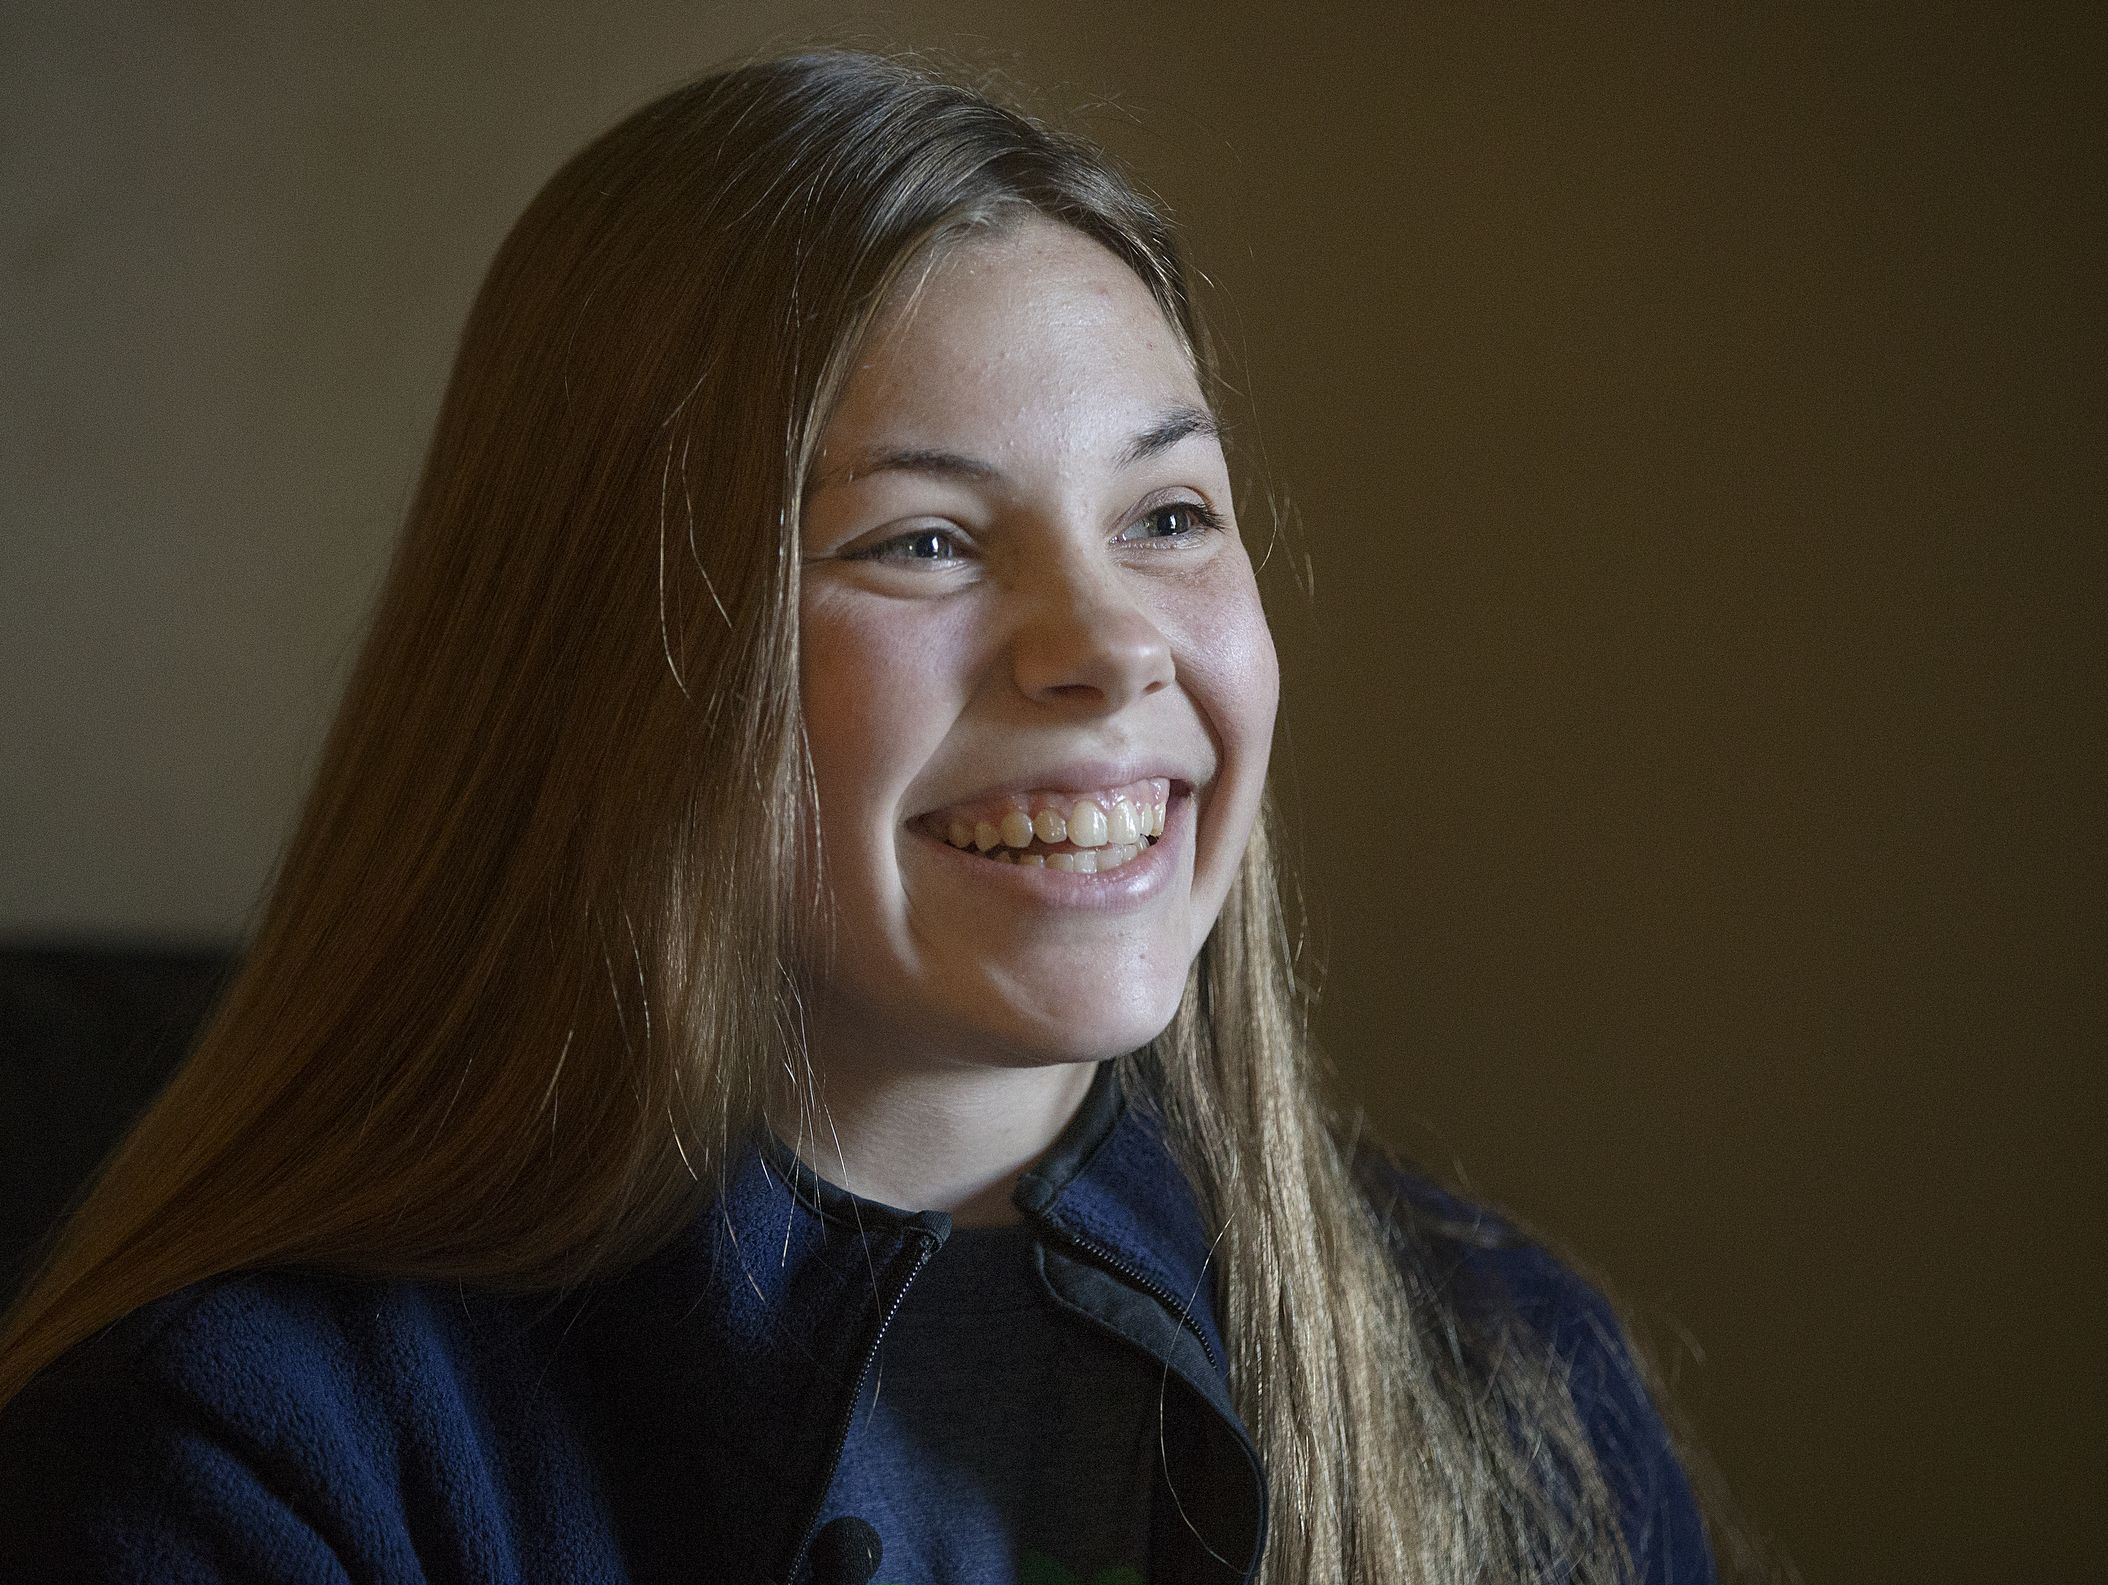 Olivia Kavanaugh, 18, shares her perspective on her sister Caroline's experience living with a brain tumor, and how Caroline's positive spirit inspires her, at her family's south side home, Tuesday, September 27, 2016.